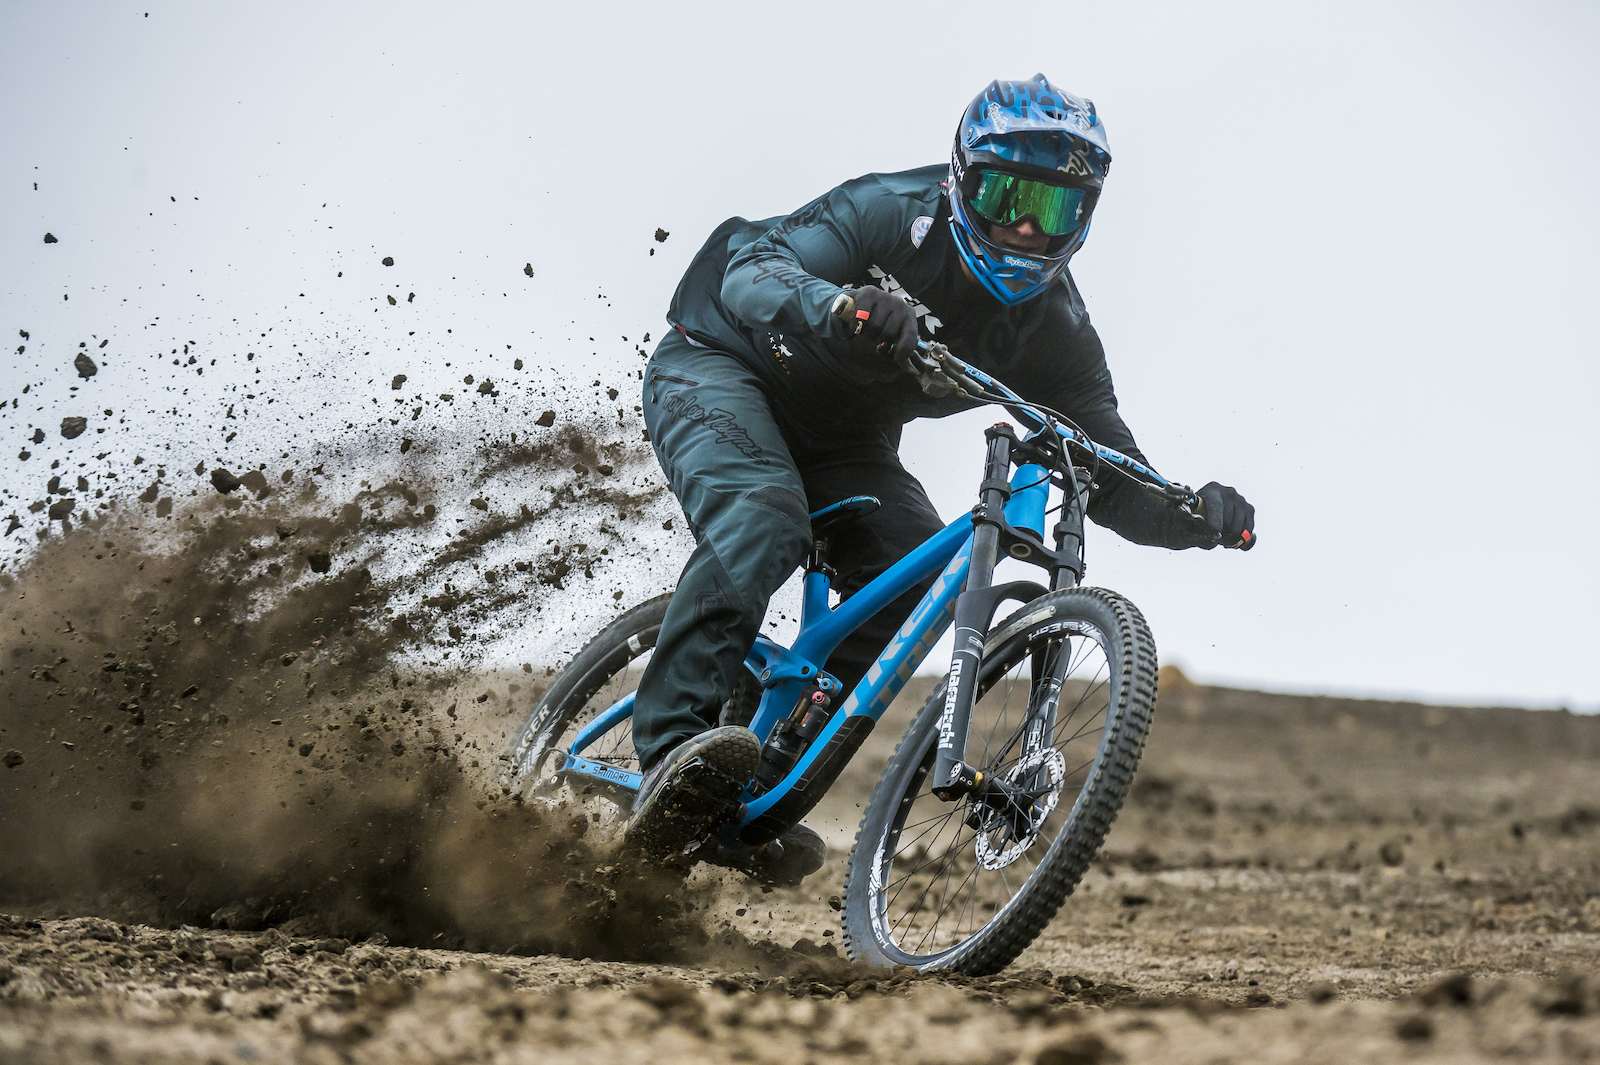 Tom got along with the dirt super quick. Blake Jorgenson Red Bull Content Pool